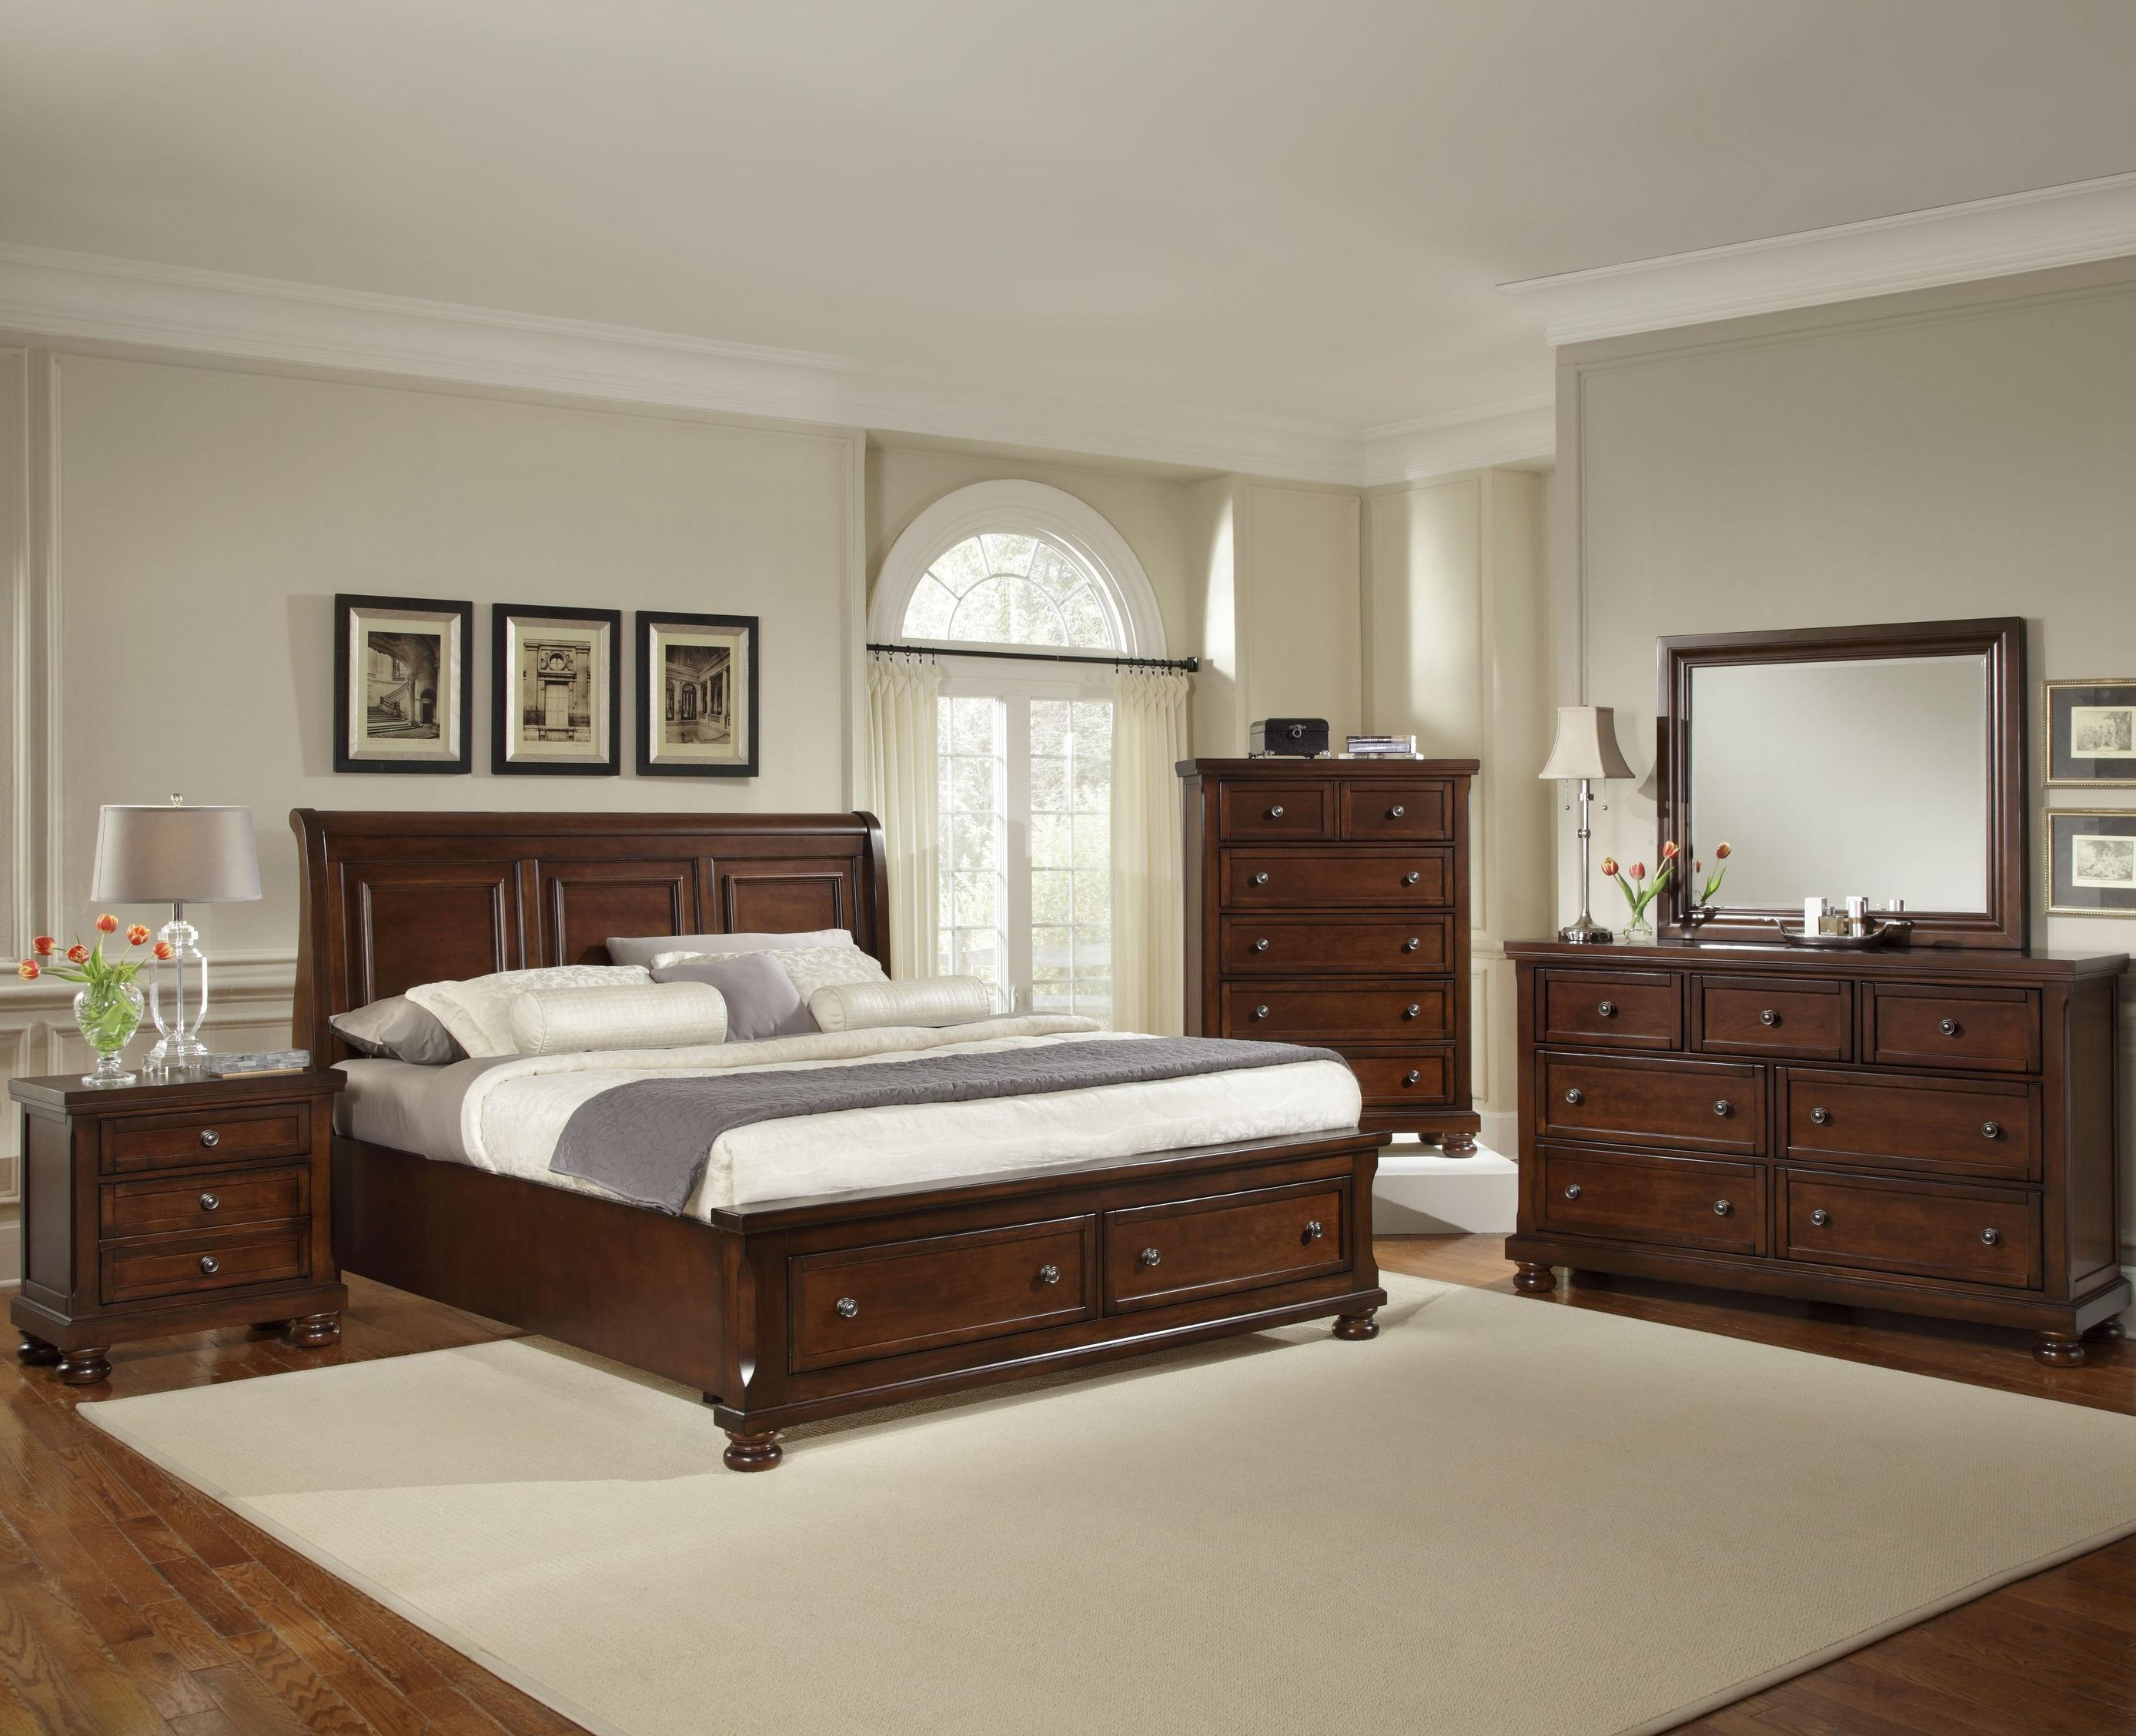 Queen Bedroom Group By Vaughan Bassett Wolf And Gardiner Wolf Furniture